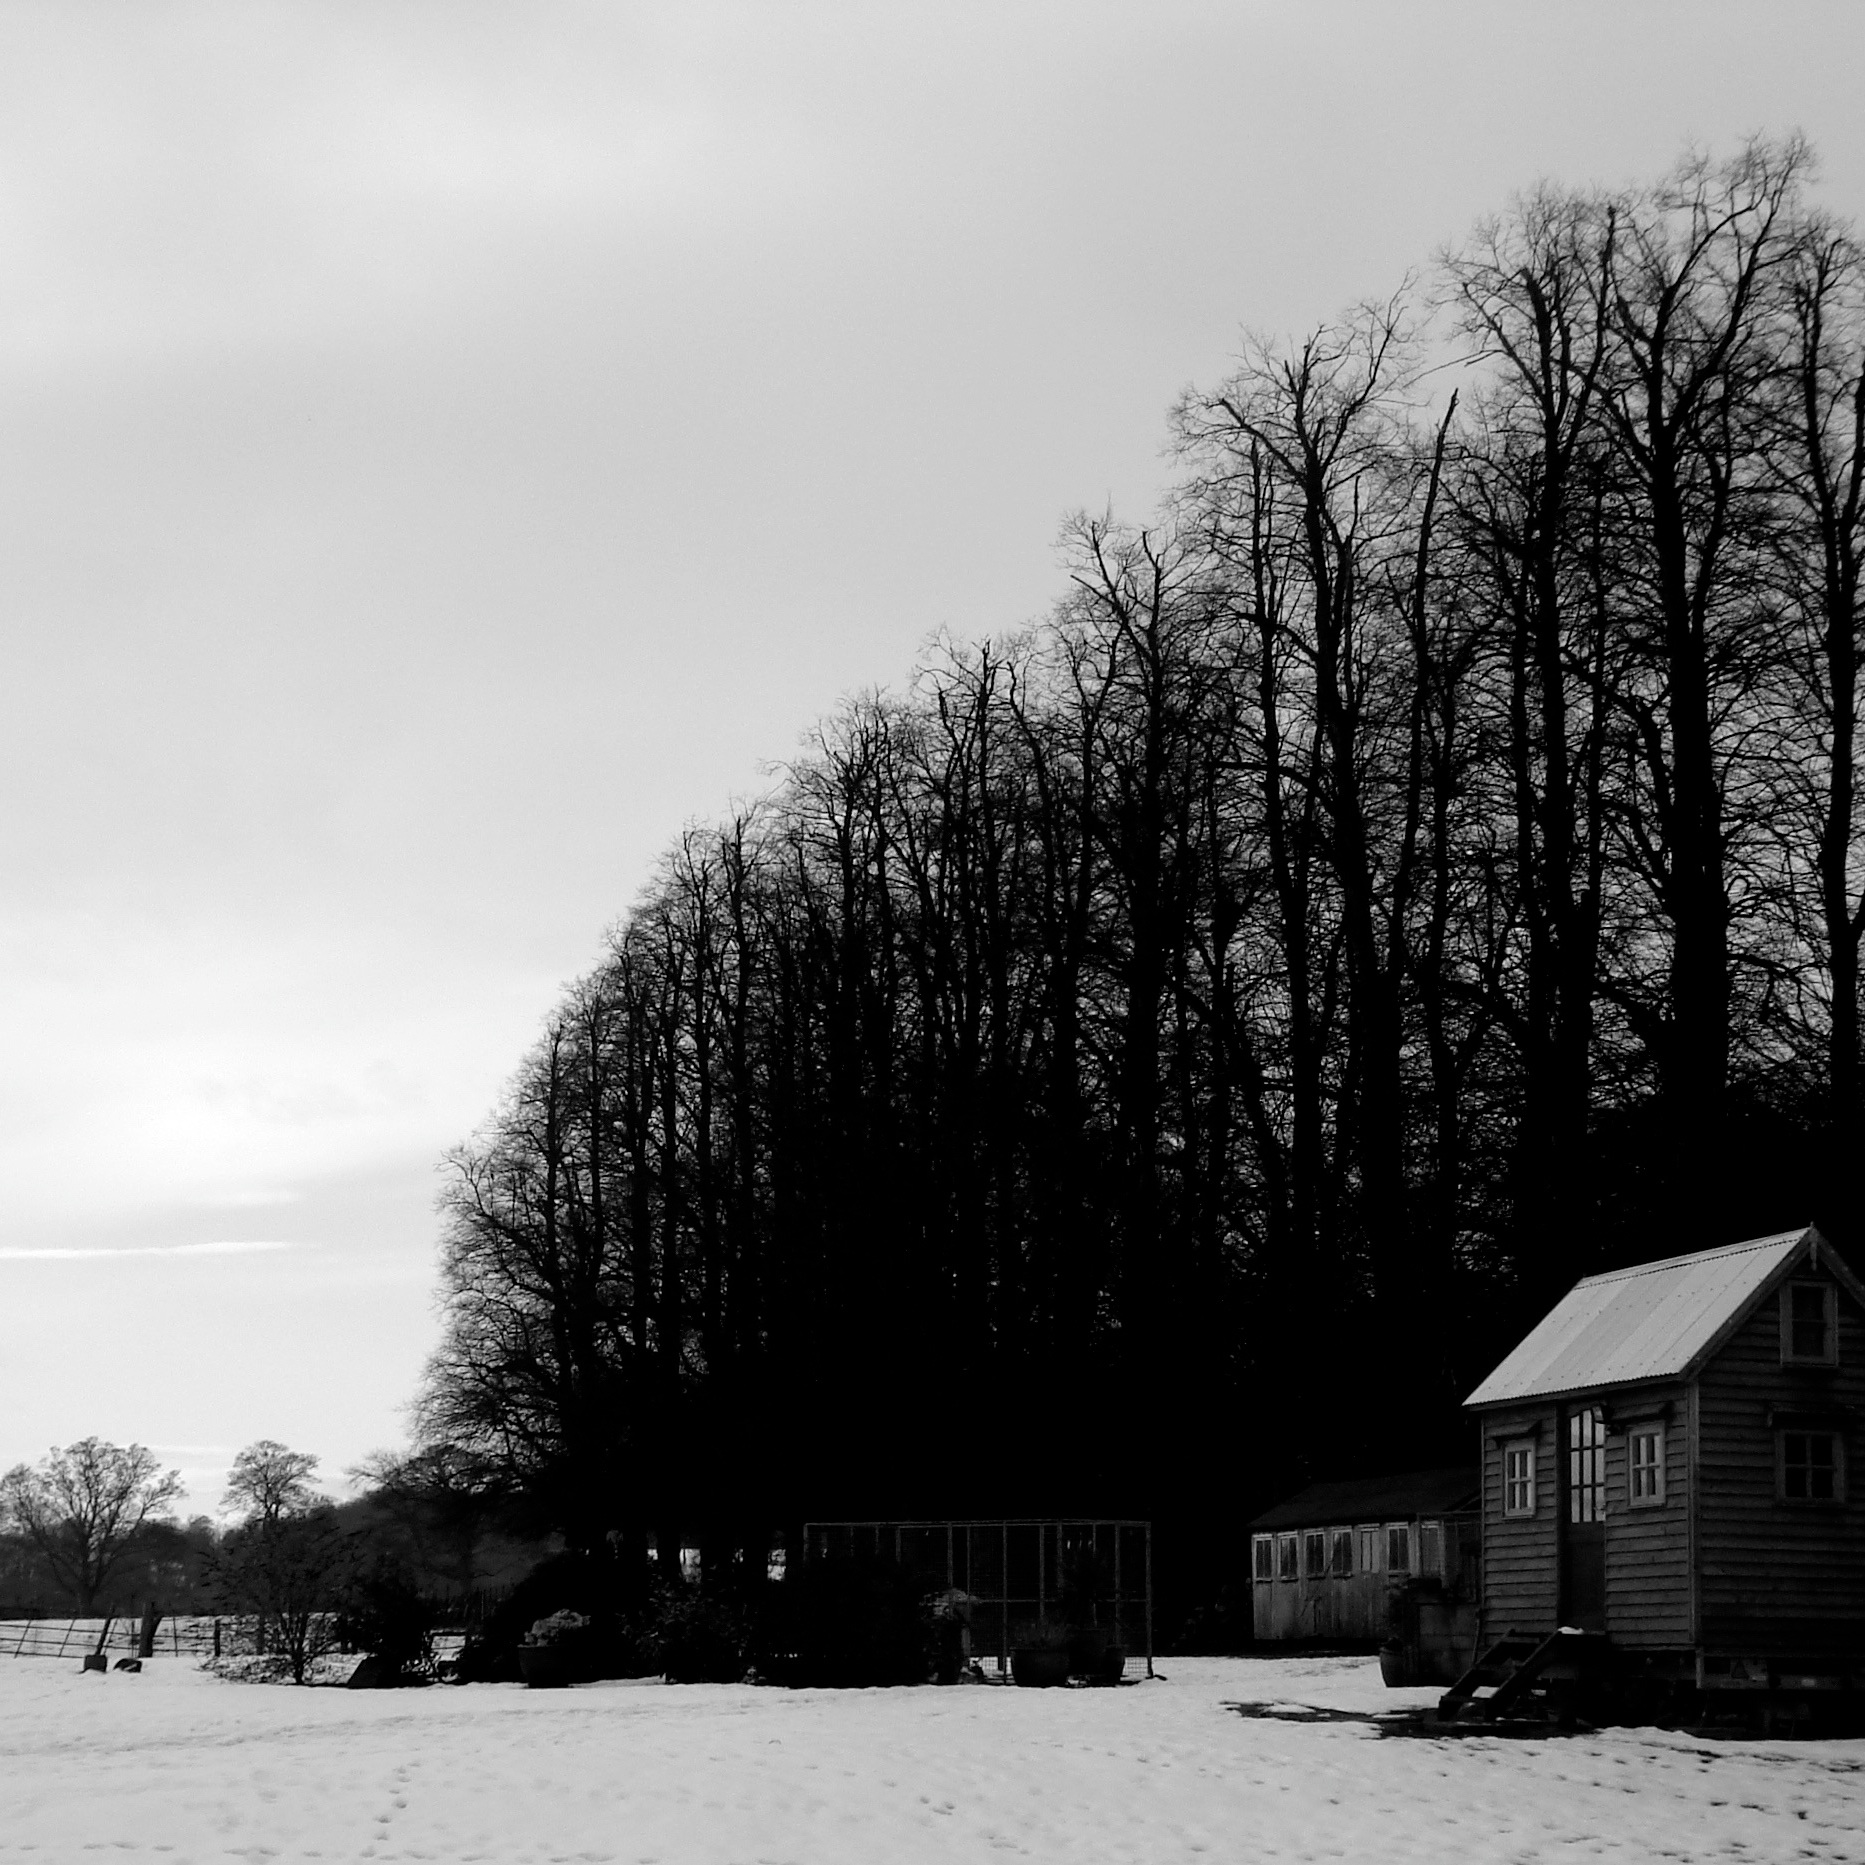 b/w Shed on wheels in snow